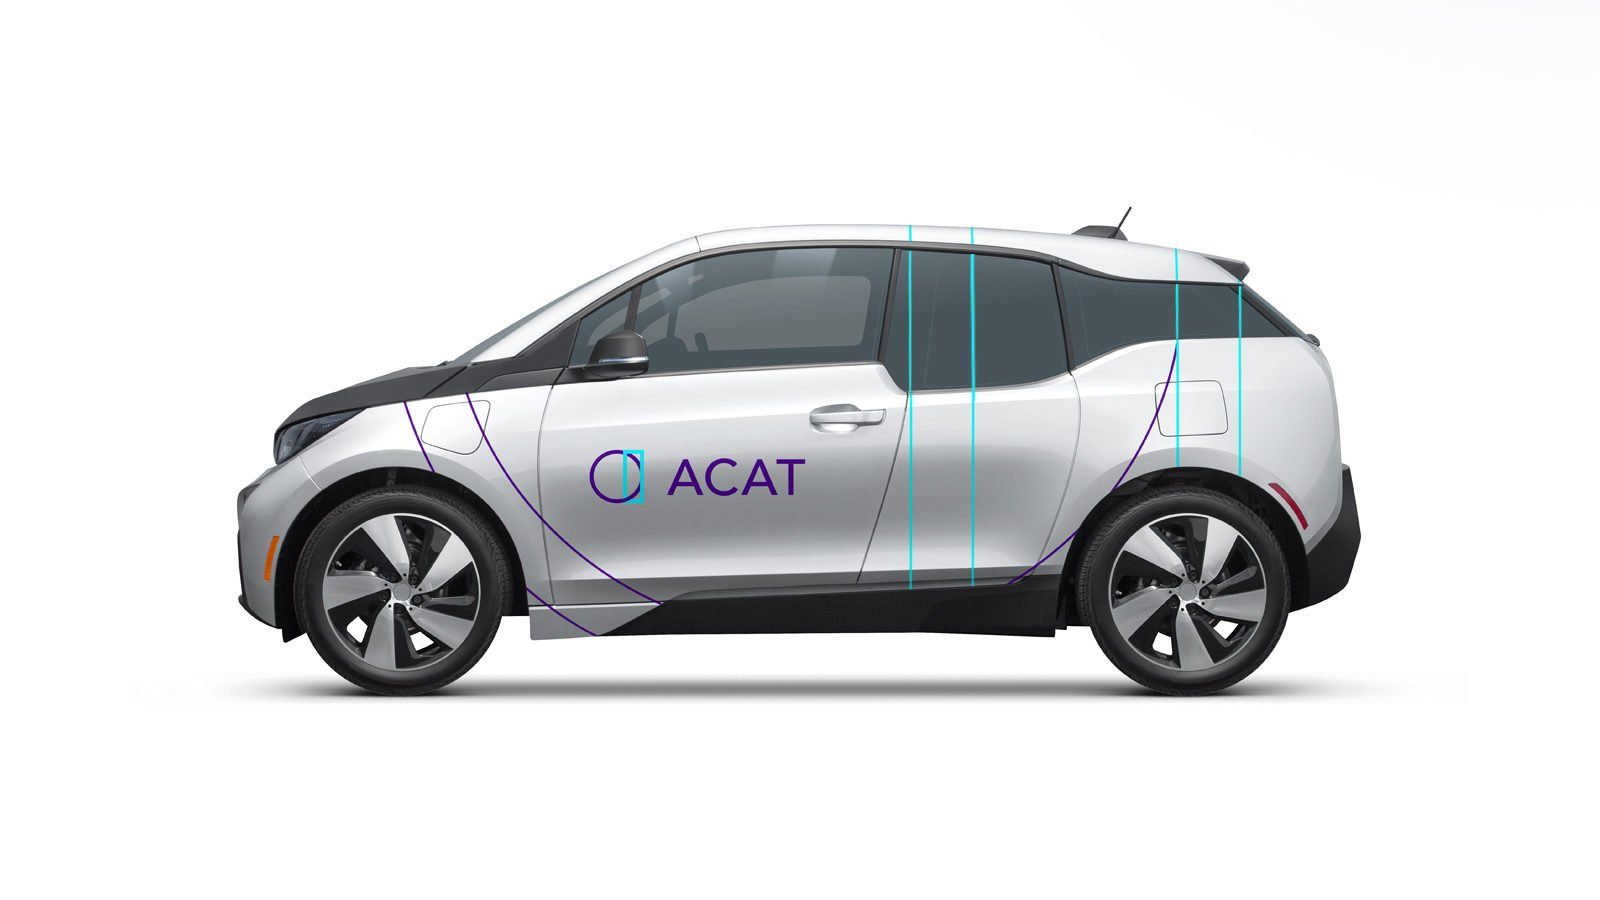 ACAT Wellness Brand Identity Car by Bullhorn Creative